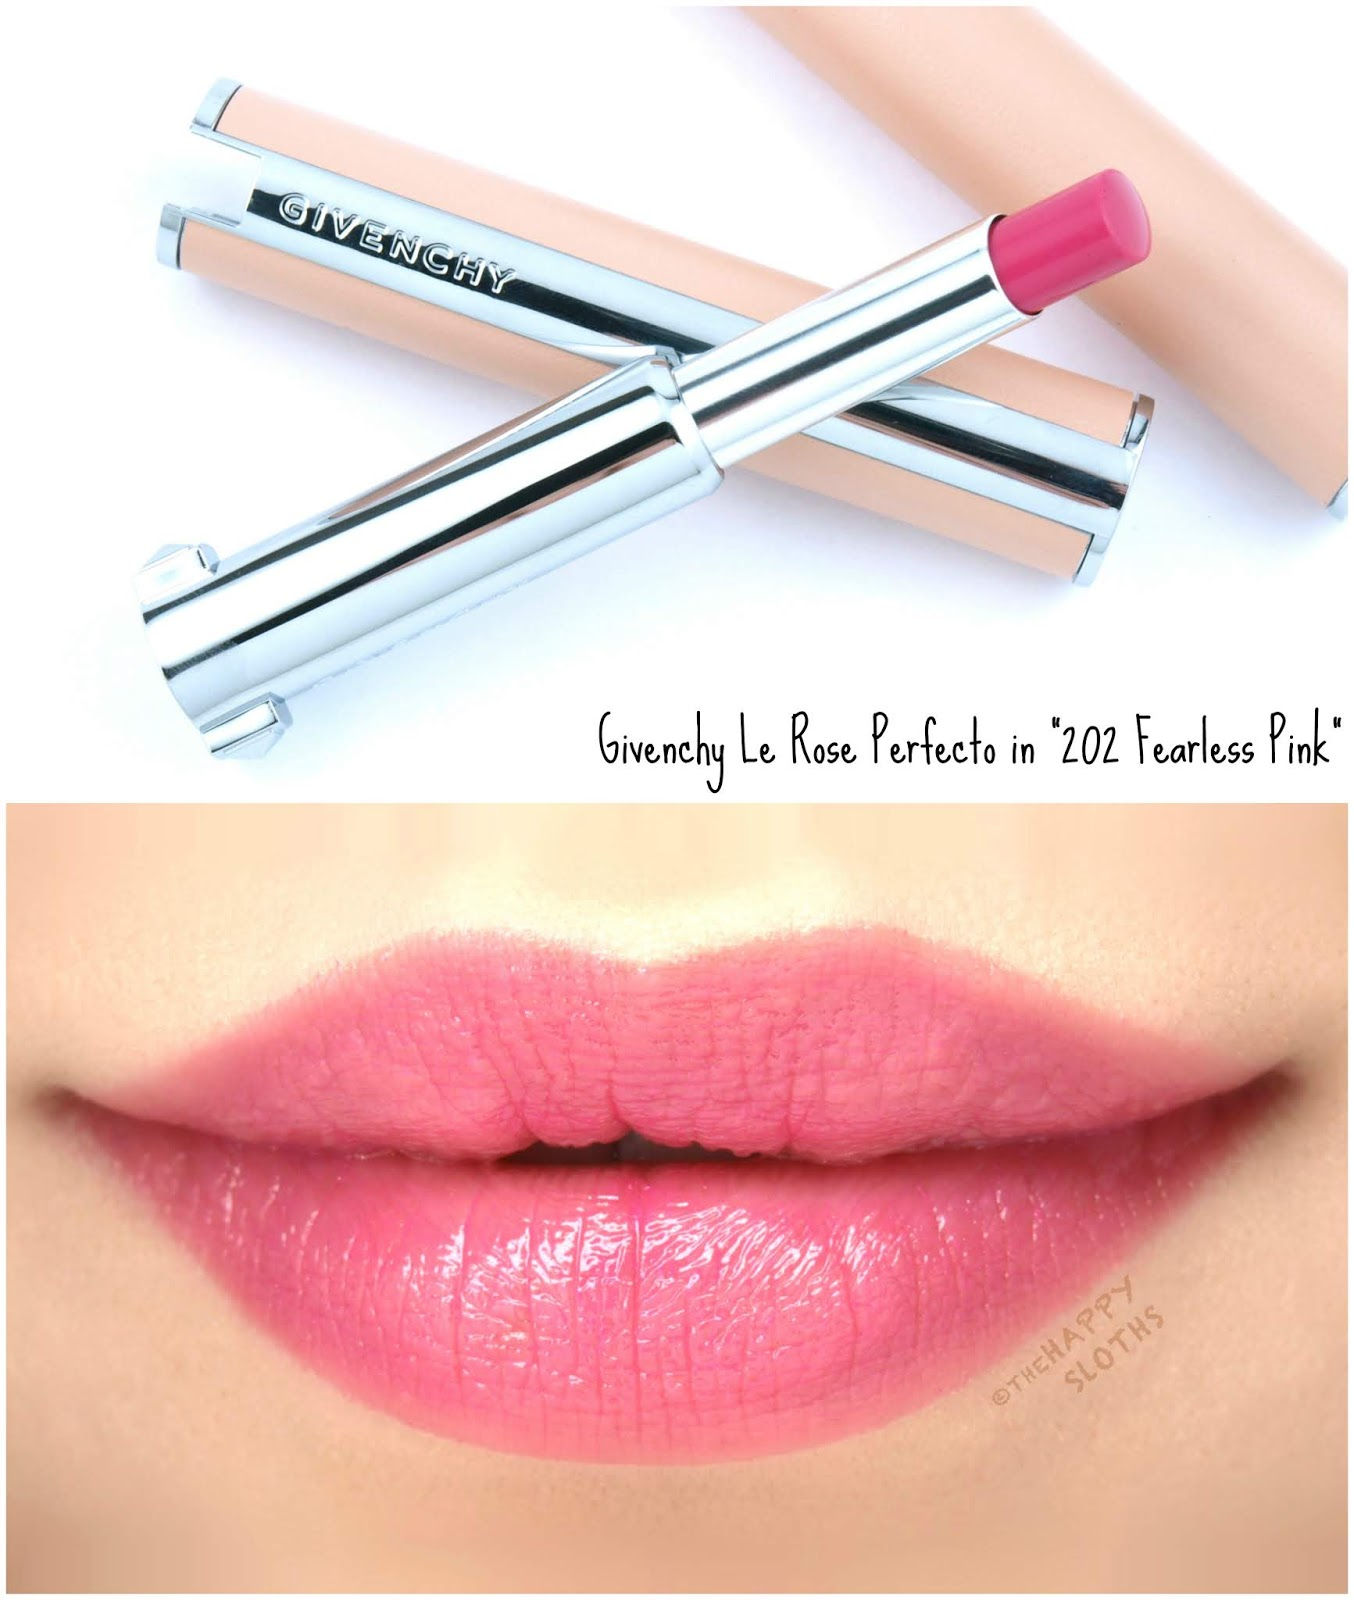 "Givenchy | Le Rose Perfecto Beautifying Lip Balm in ""202 Fearless Pink"": Review and Swatches"